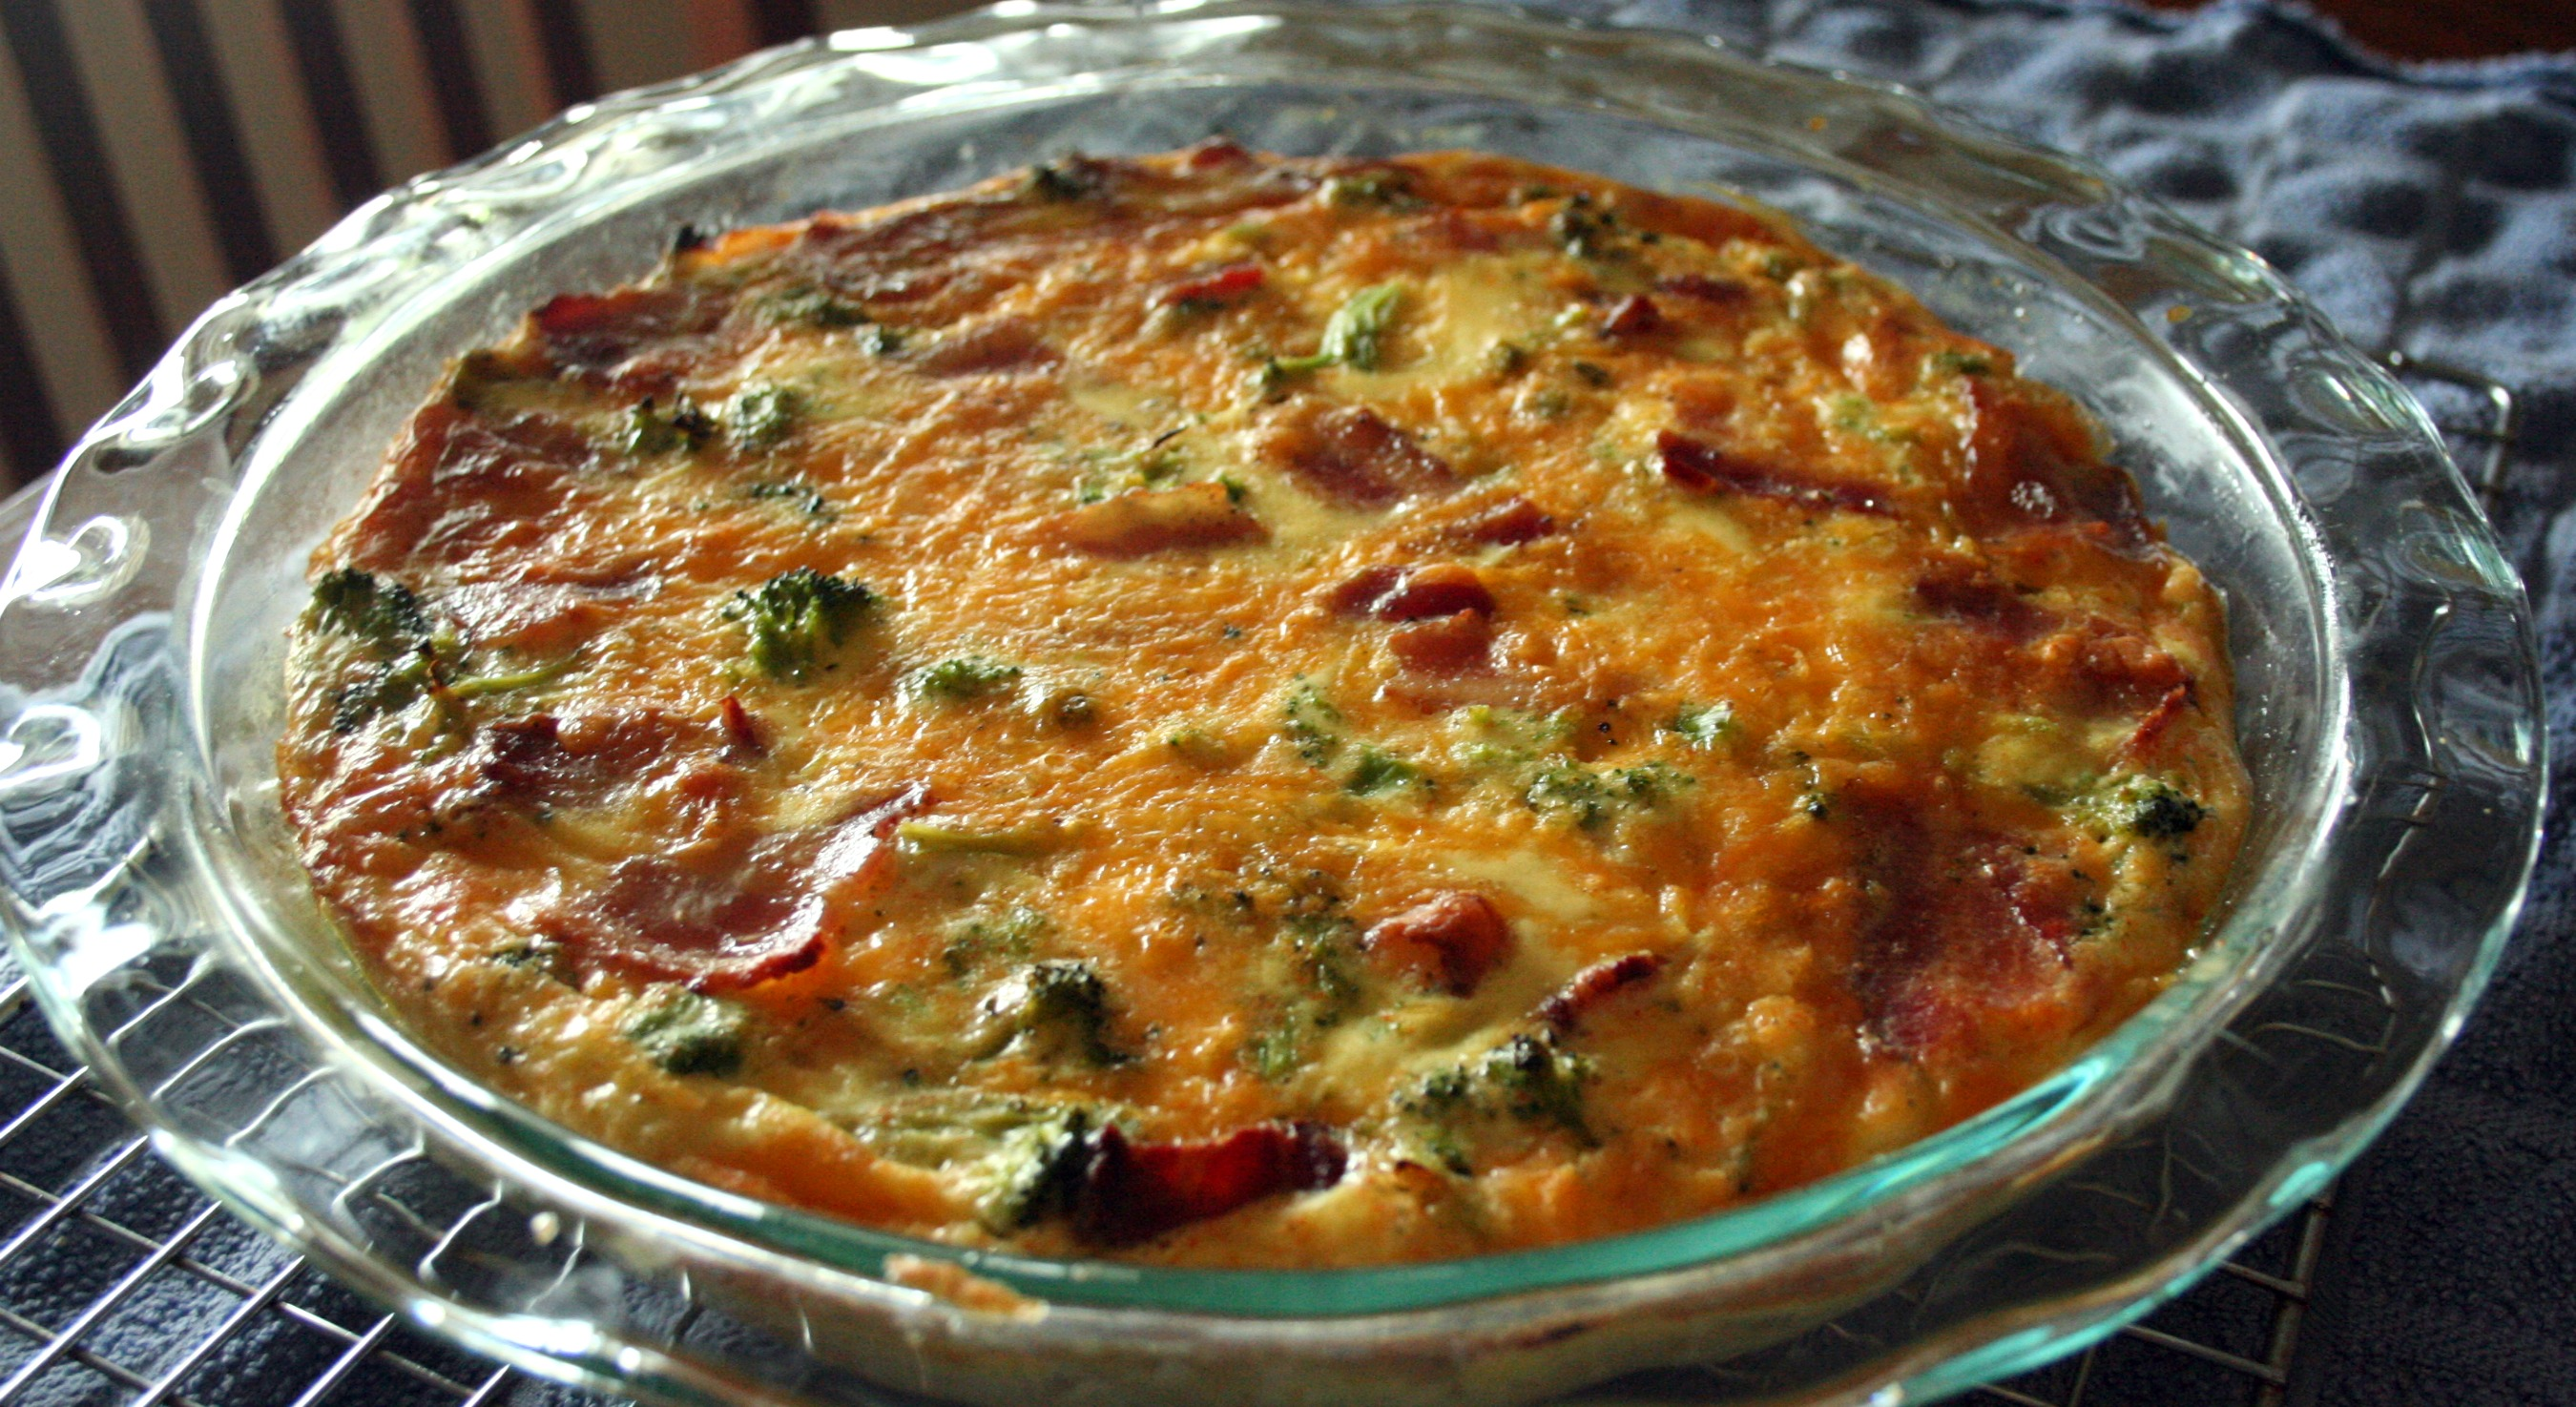 Crustless quiche and garlic bread mom makes crustless quiche master recipe adapted from food network forumfinder Image collections